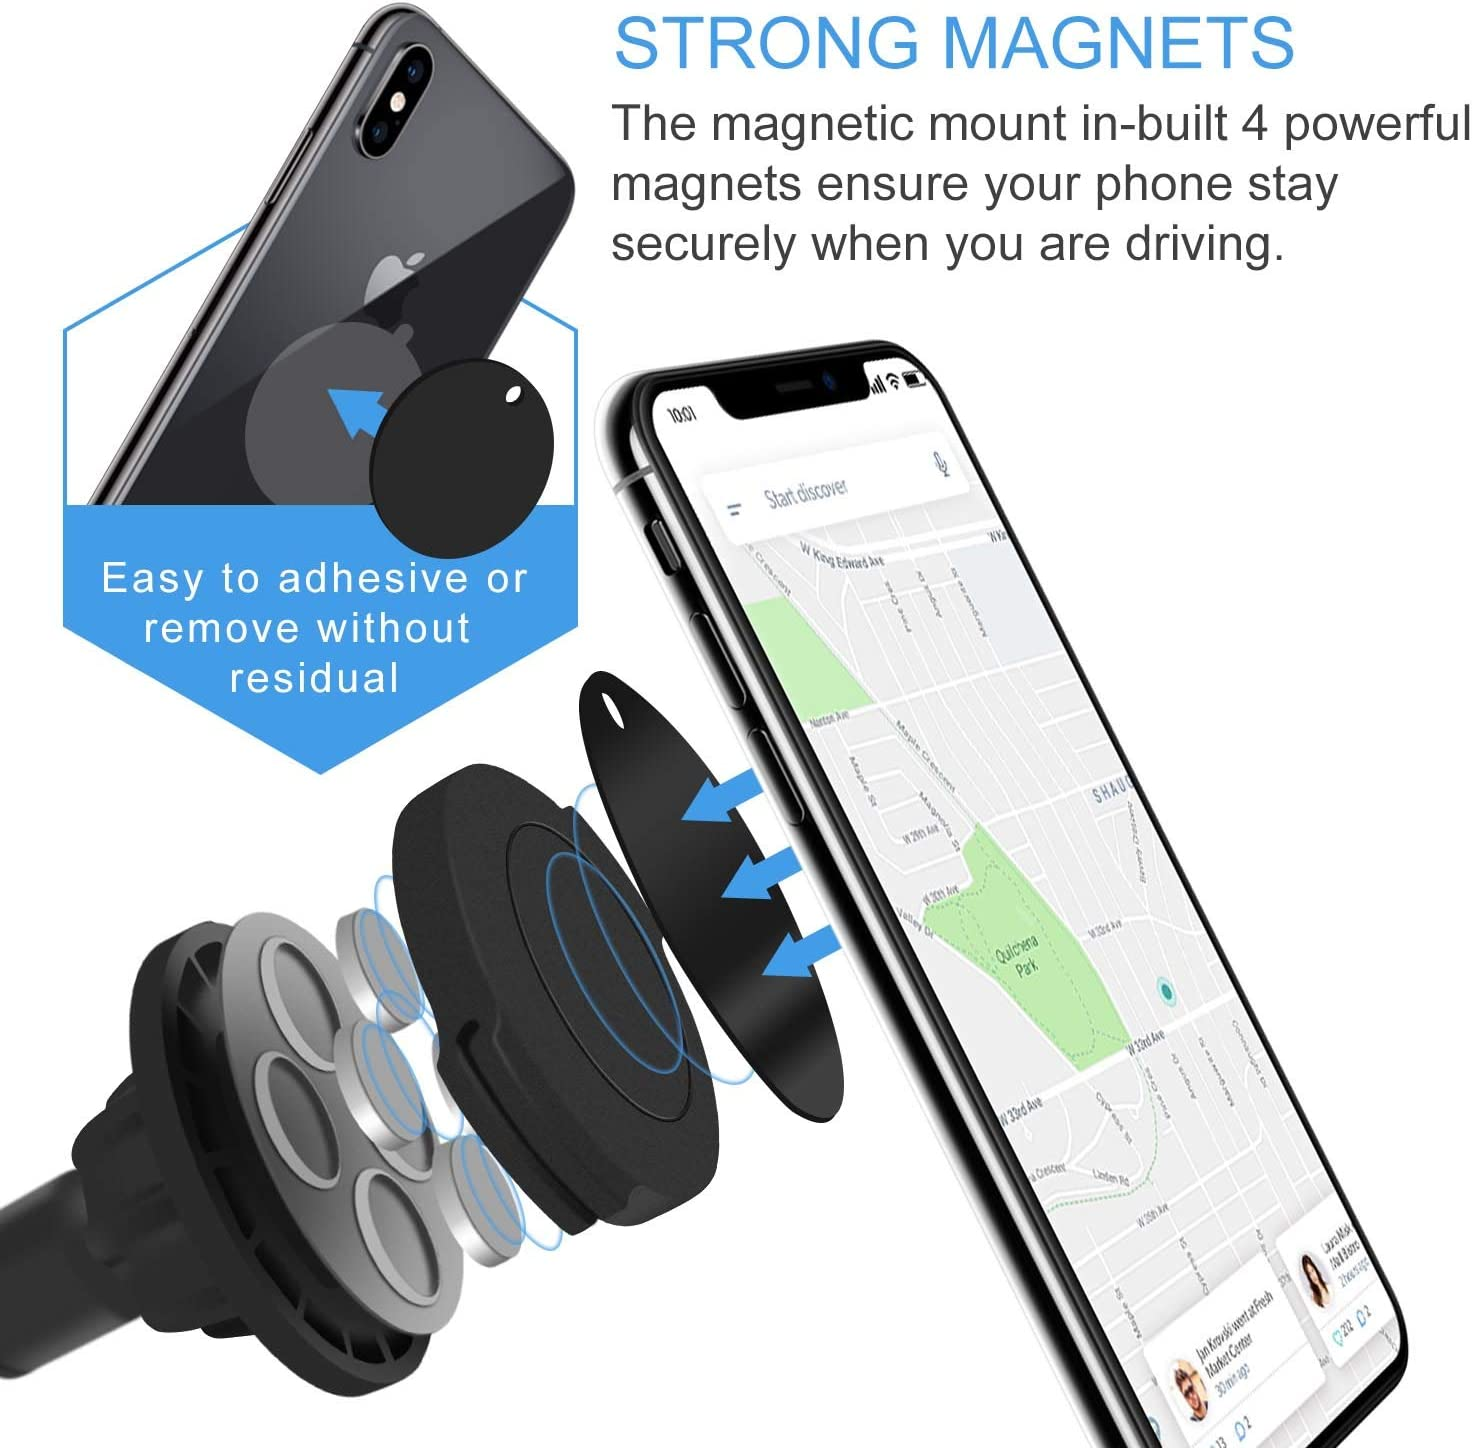 Note10 9 8 Black Samsung Galaxy S10 S9 S8 Plus IFCASE Long Arm Strong Magnet Car Windshield Dashboard Universal Magnetic Cradle Cell Phone Mount Holder for iPhone Xs Max XR X 6 6s 7 8